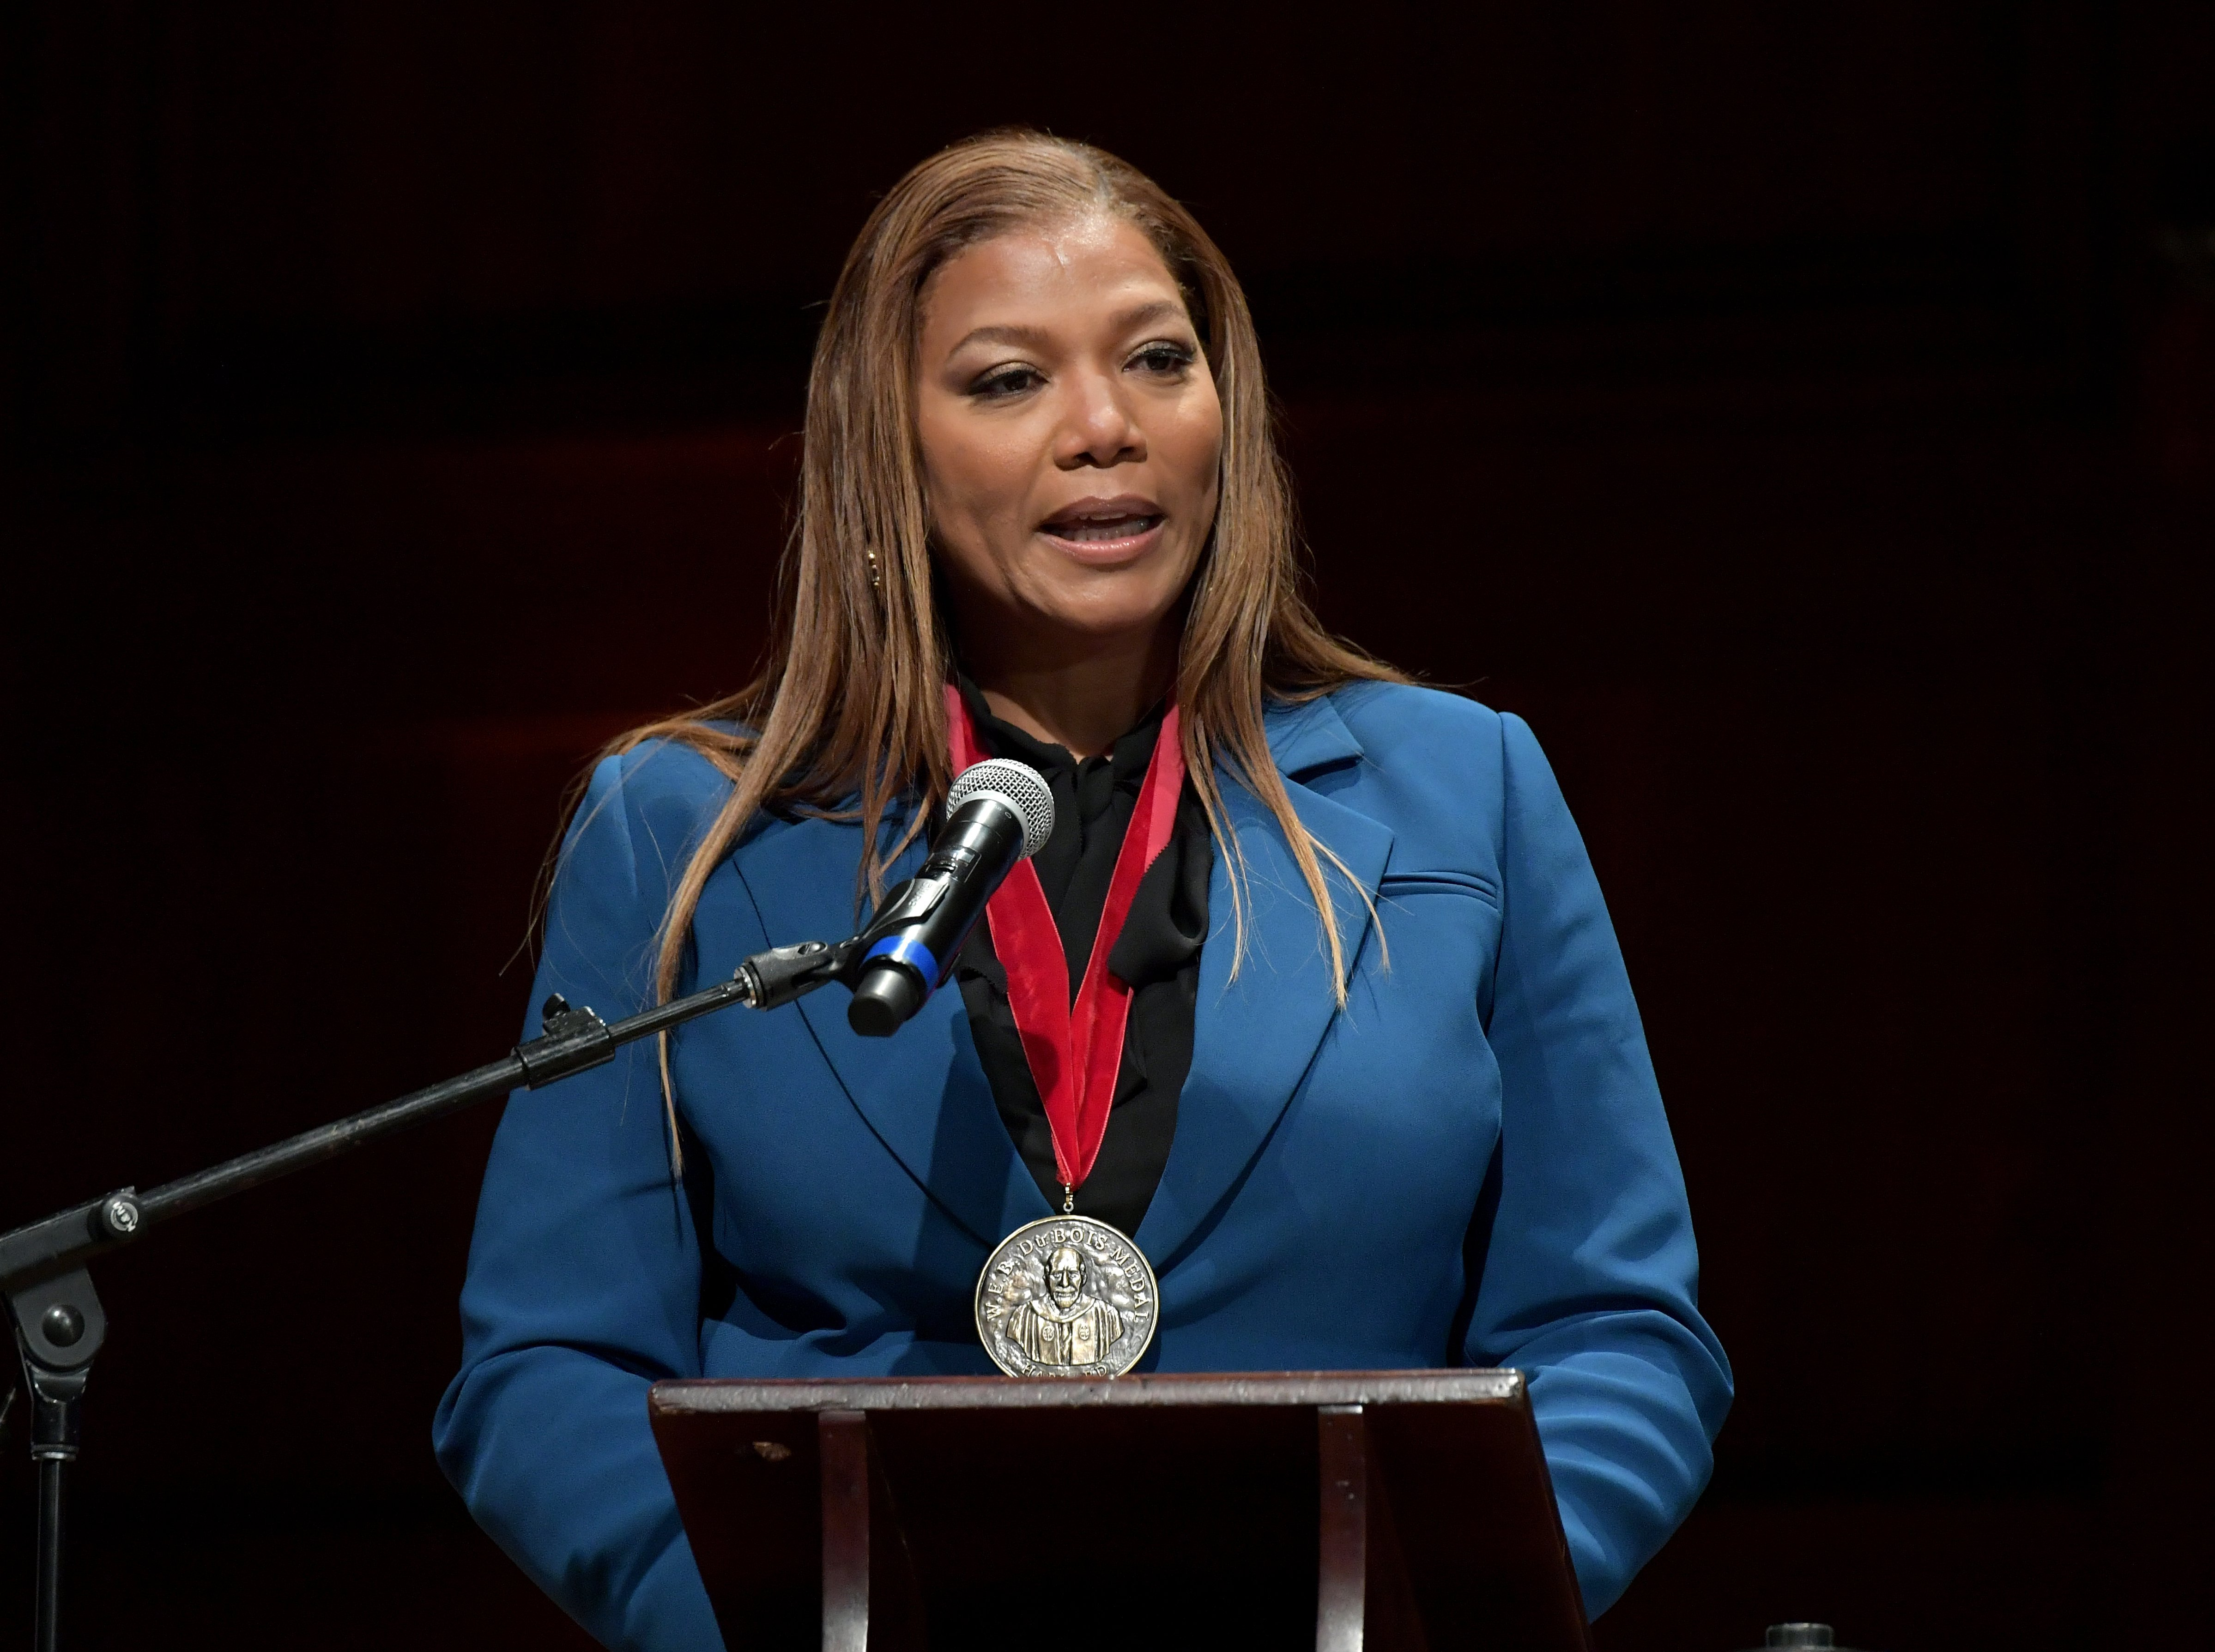 Queen Latifah delivering her powerful acceptance speech at Harvard University. | Photo: Getty Images